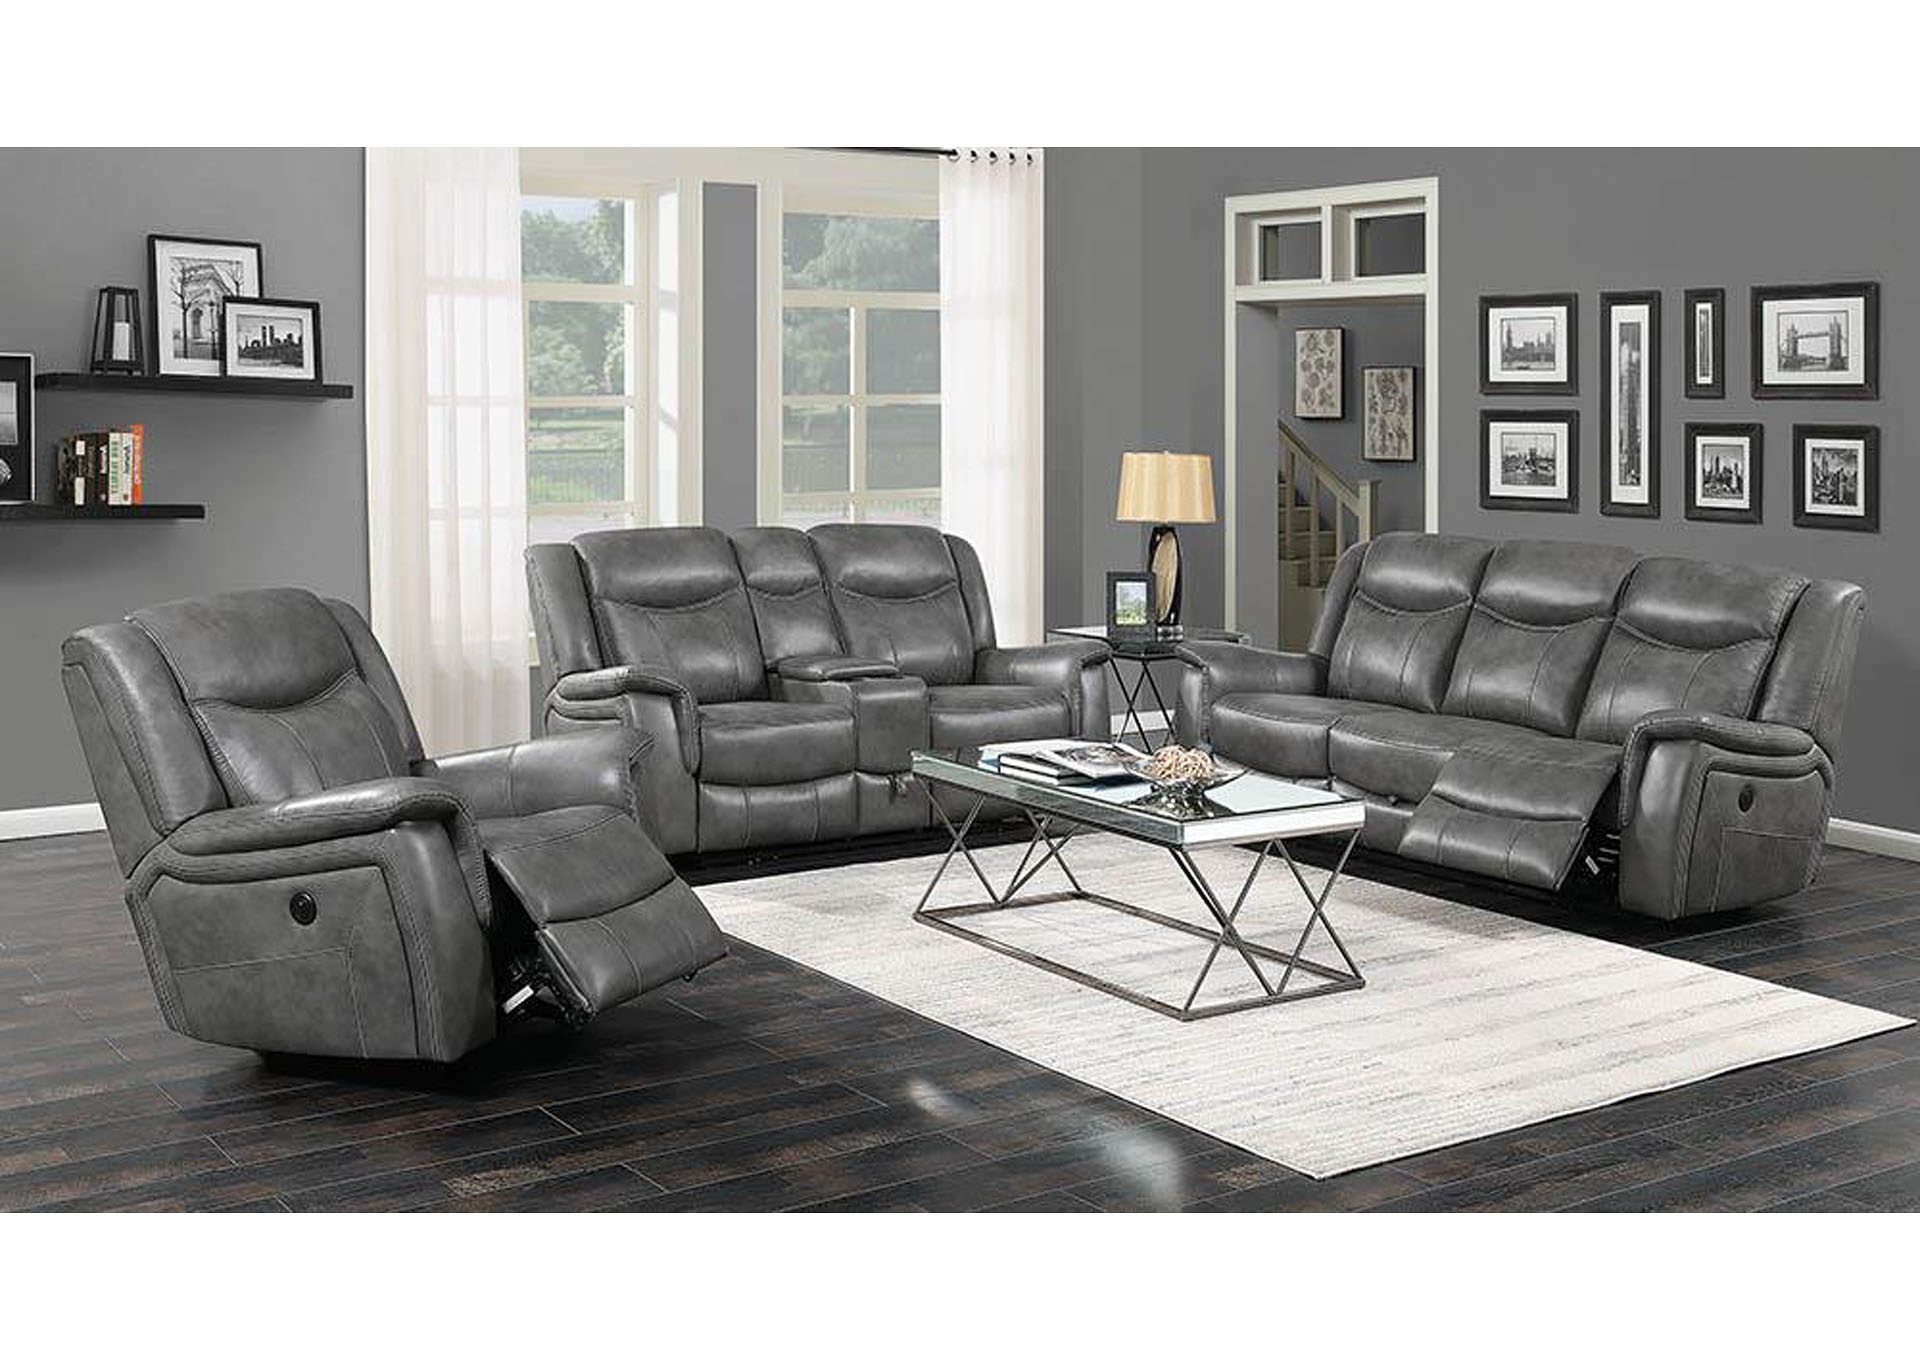 Conrad Grey Reclining Loveseat,Coaster Furniture